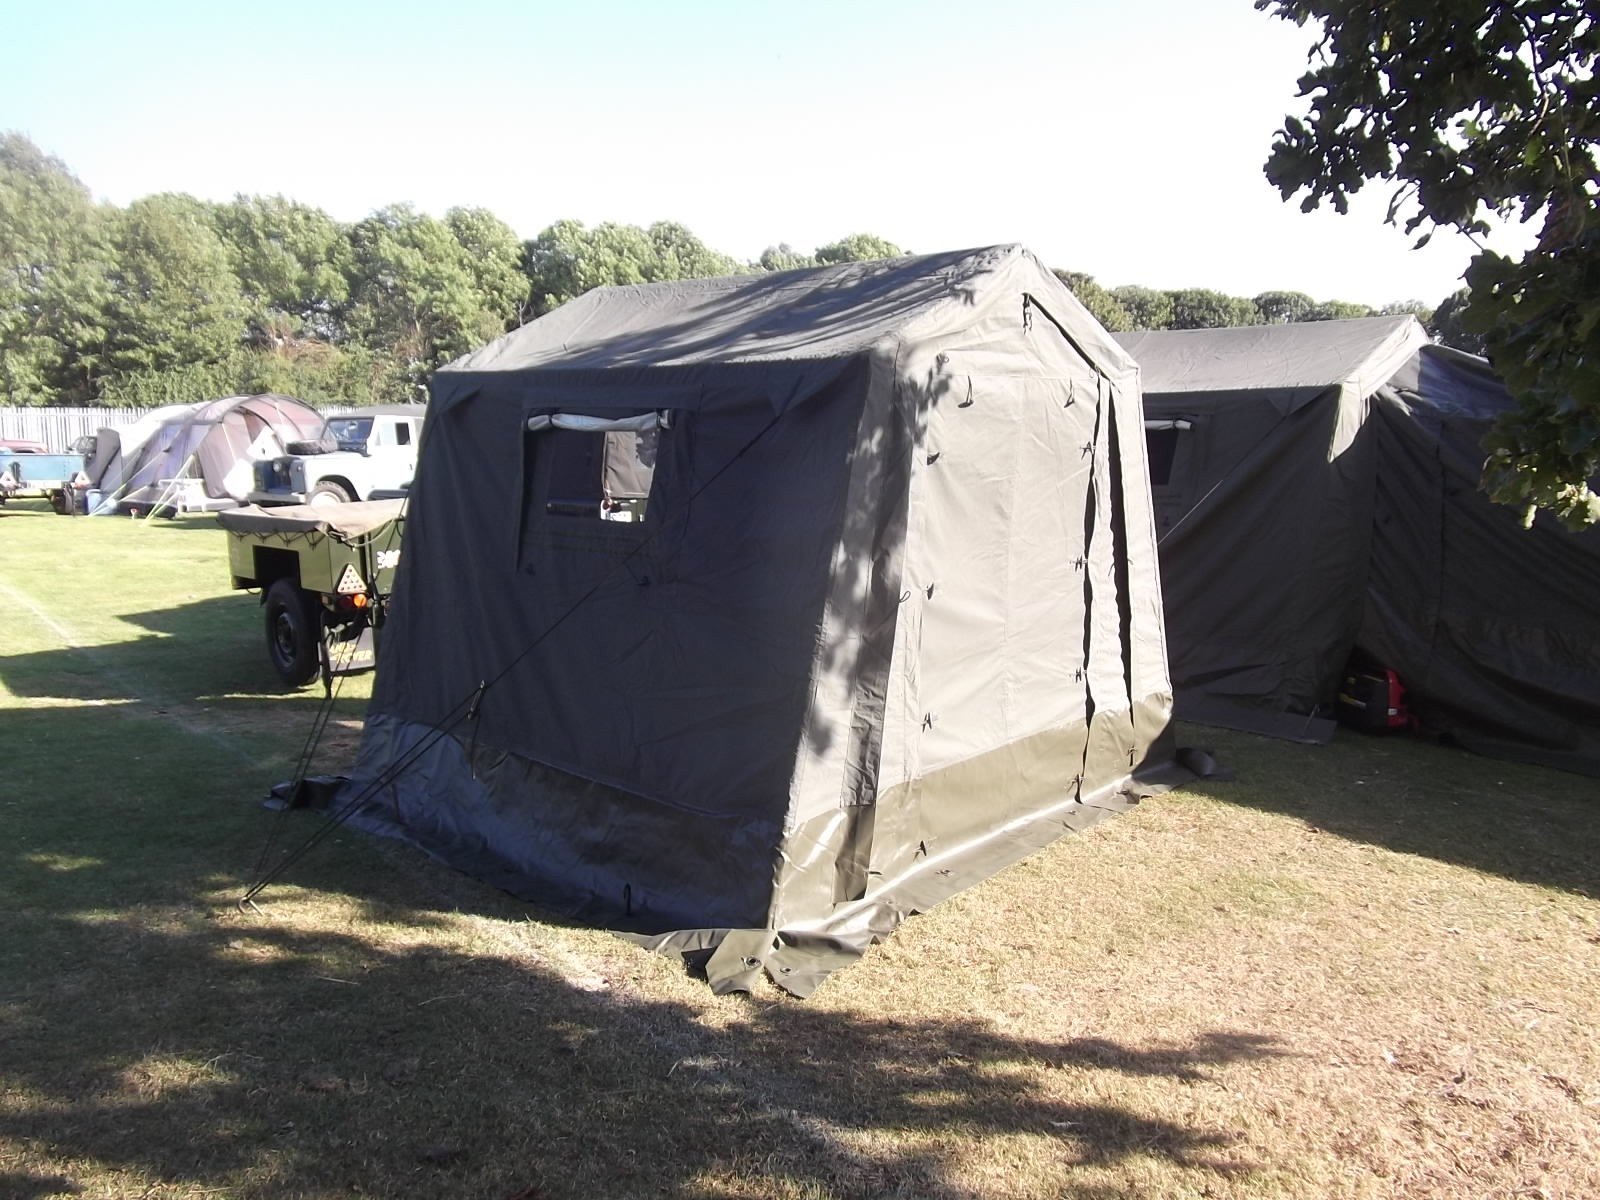 More Views & Ex British Army 9u0027 x 9u0027 Command Post Tent- A grade